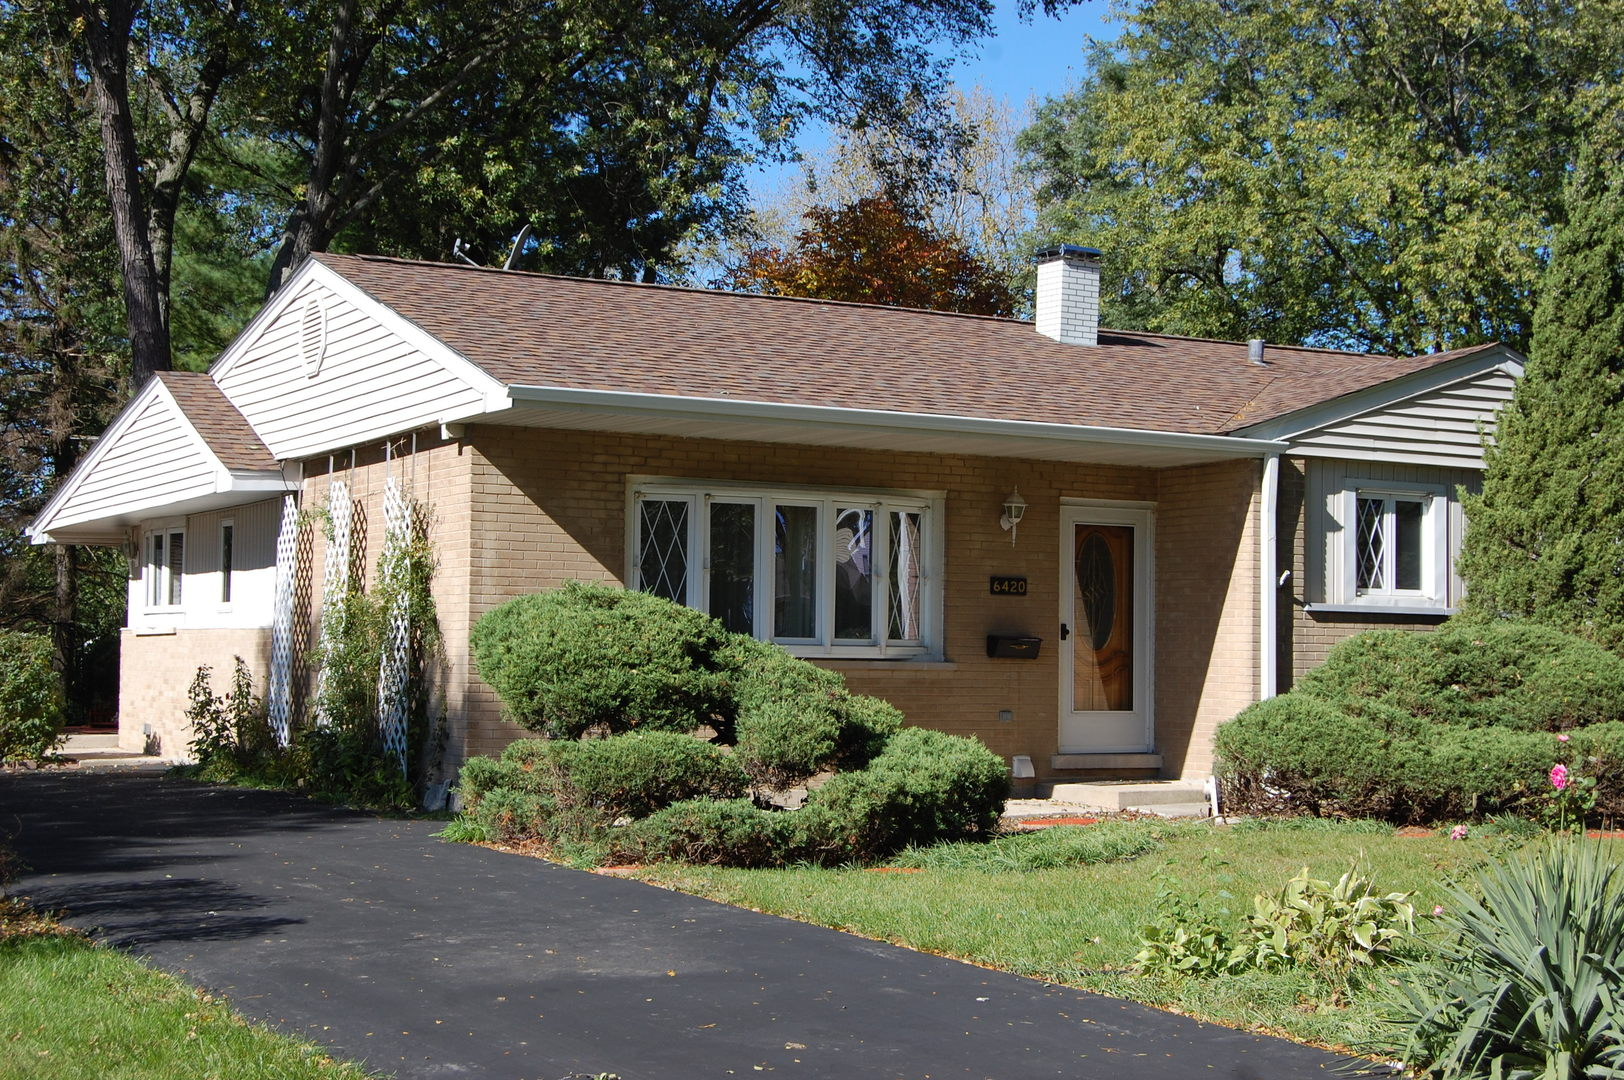 6420 POWELL STREET, DOWNERS GROVE, IL 60516